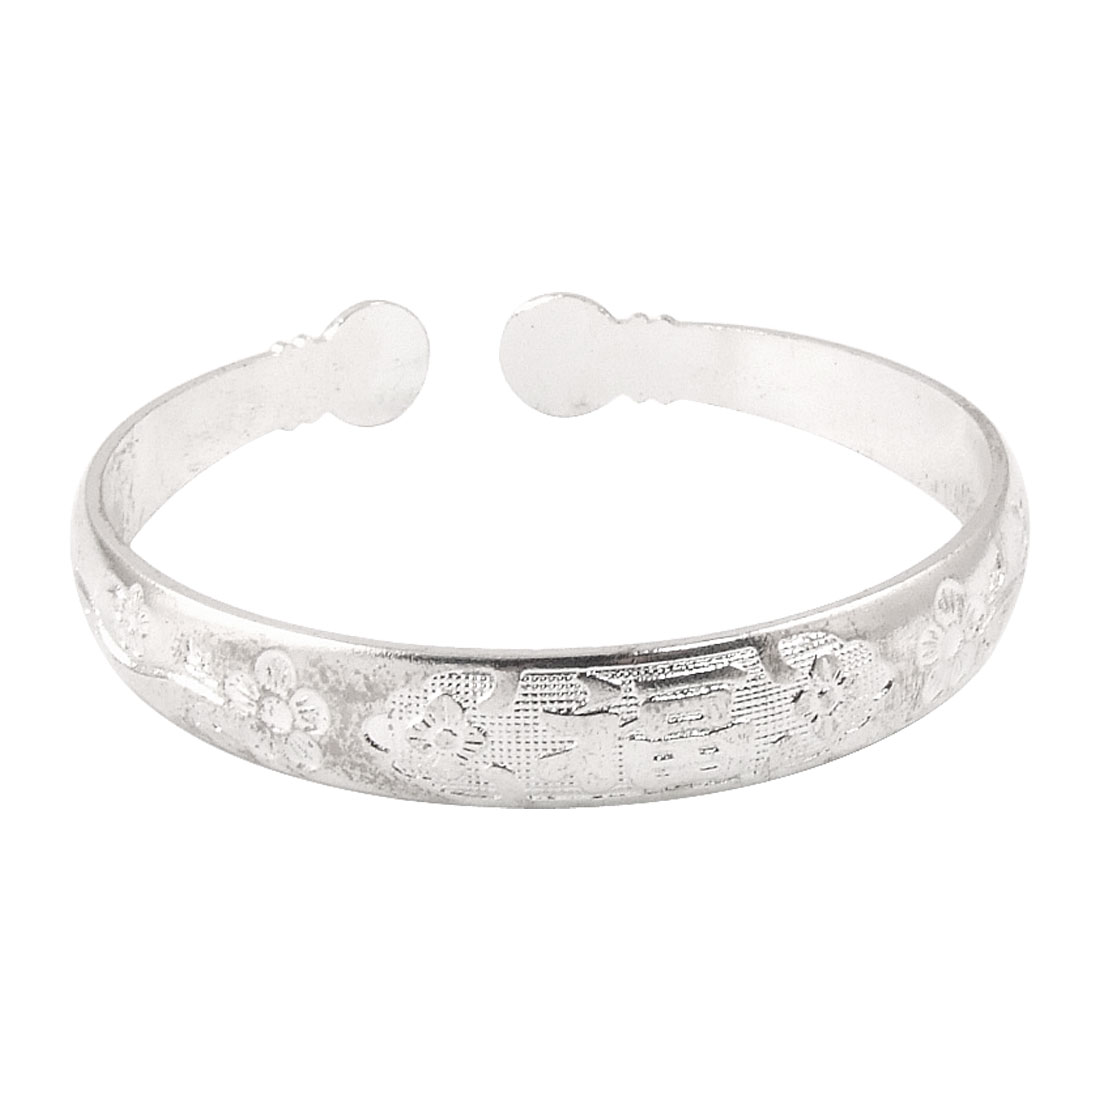 Floral Hanzi Pattern Metal Wrist Bracelet Silver Tone for Ladies